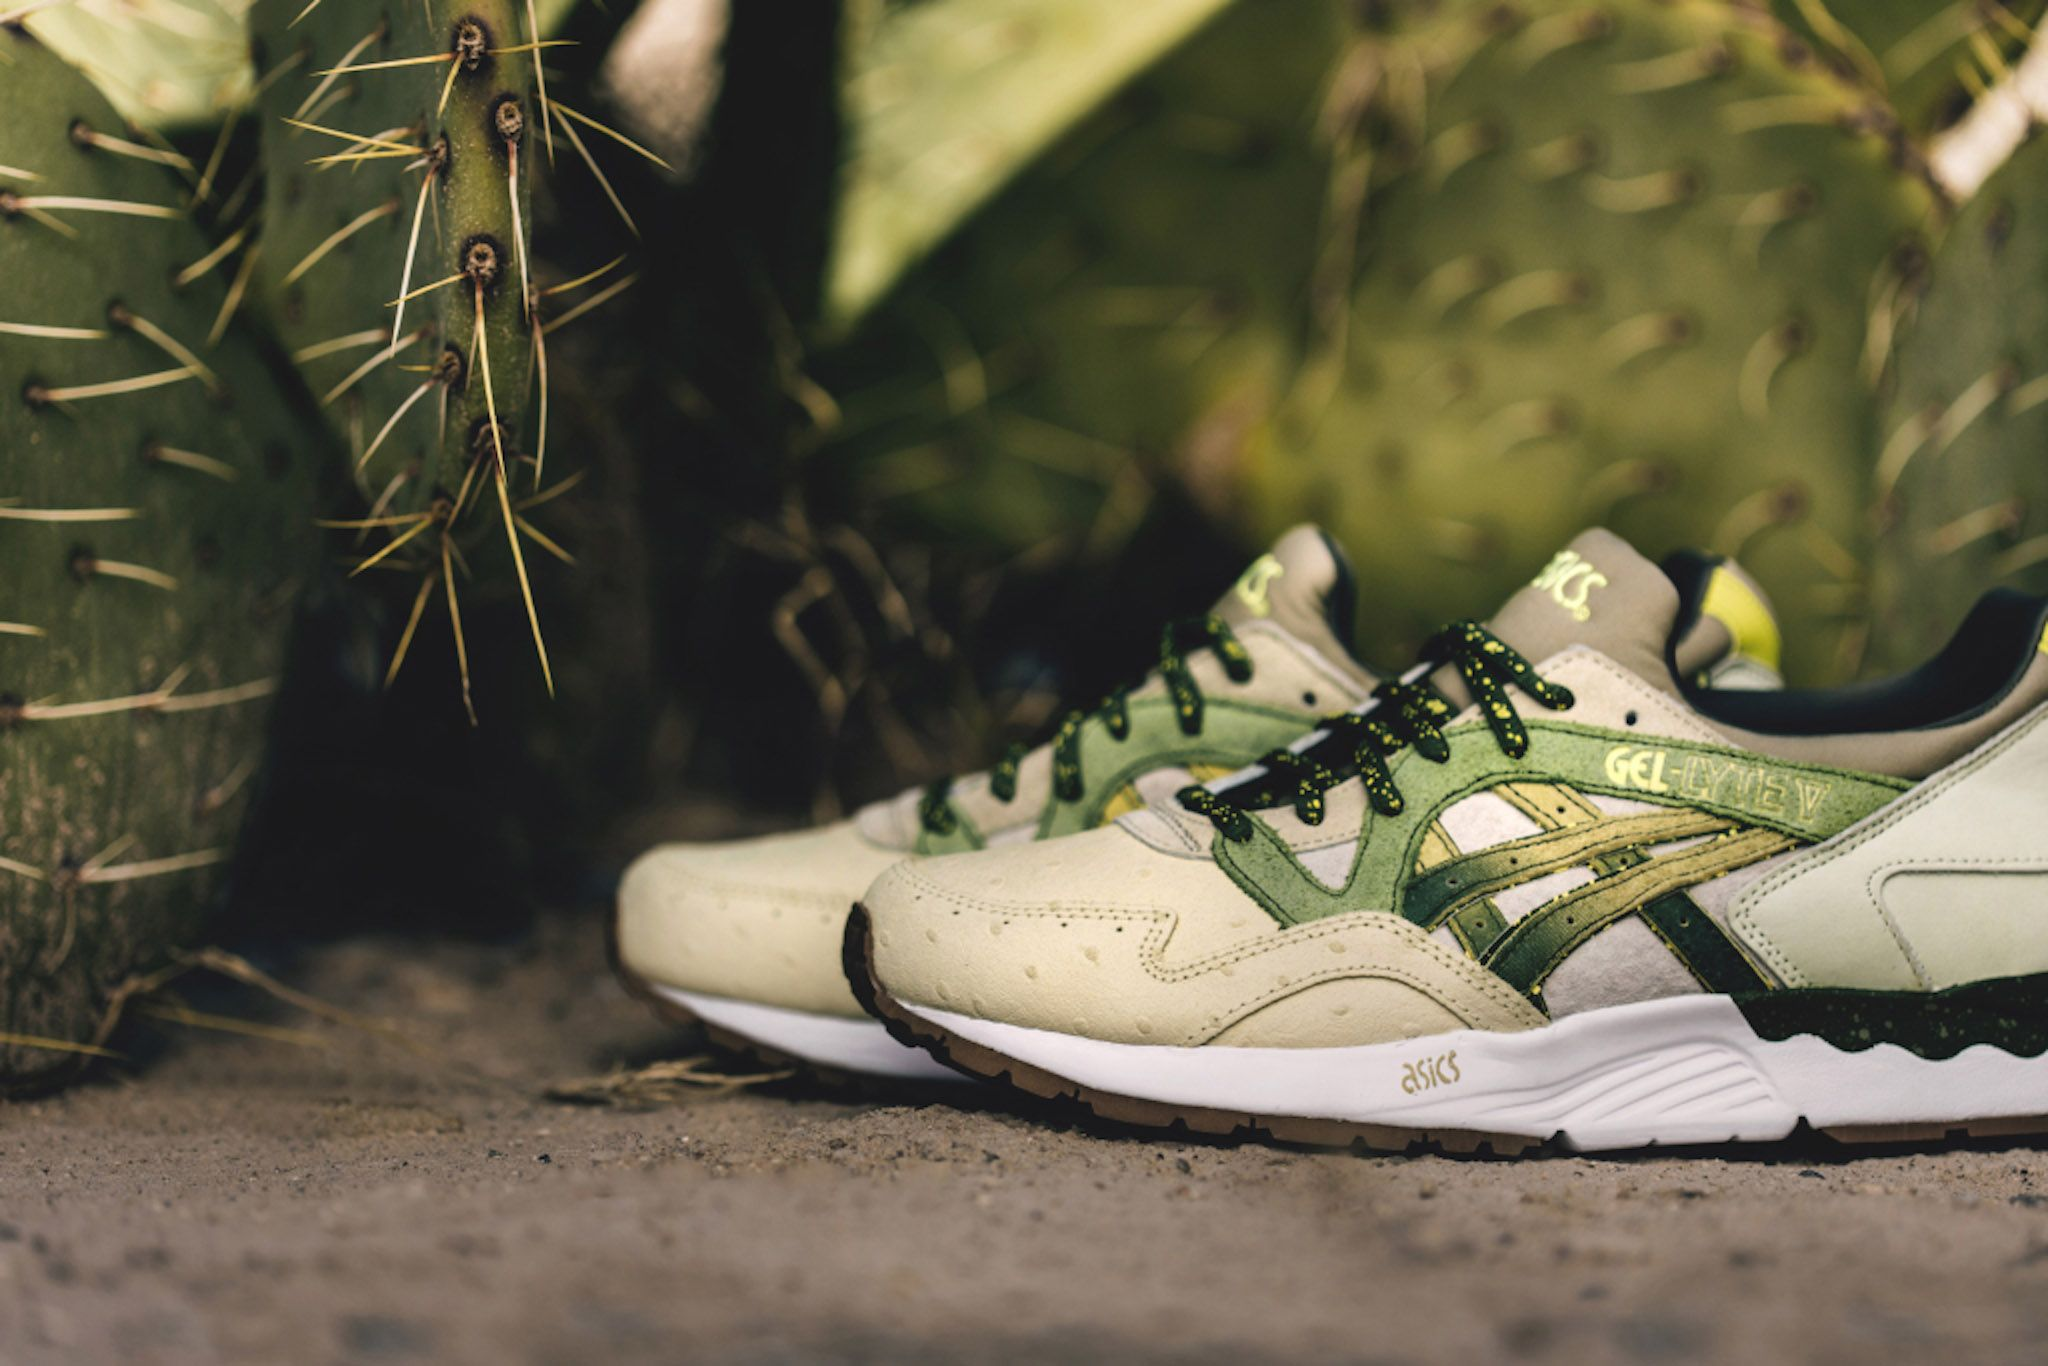 Feature x ASICS Gel Lyte V – Prickly Pear, #Asics